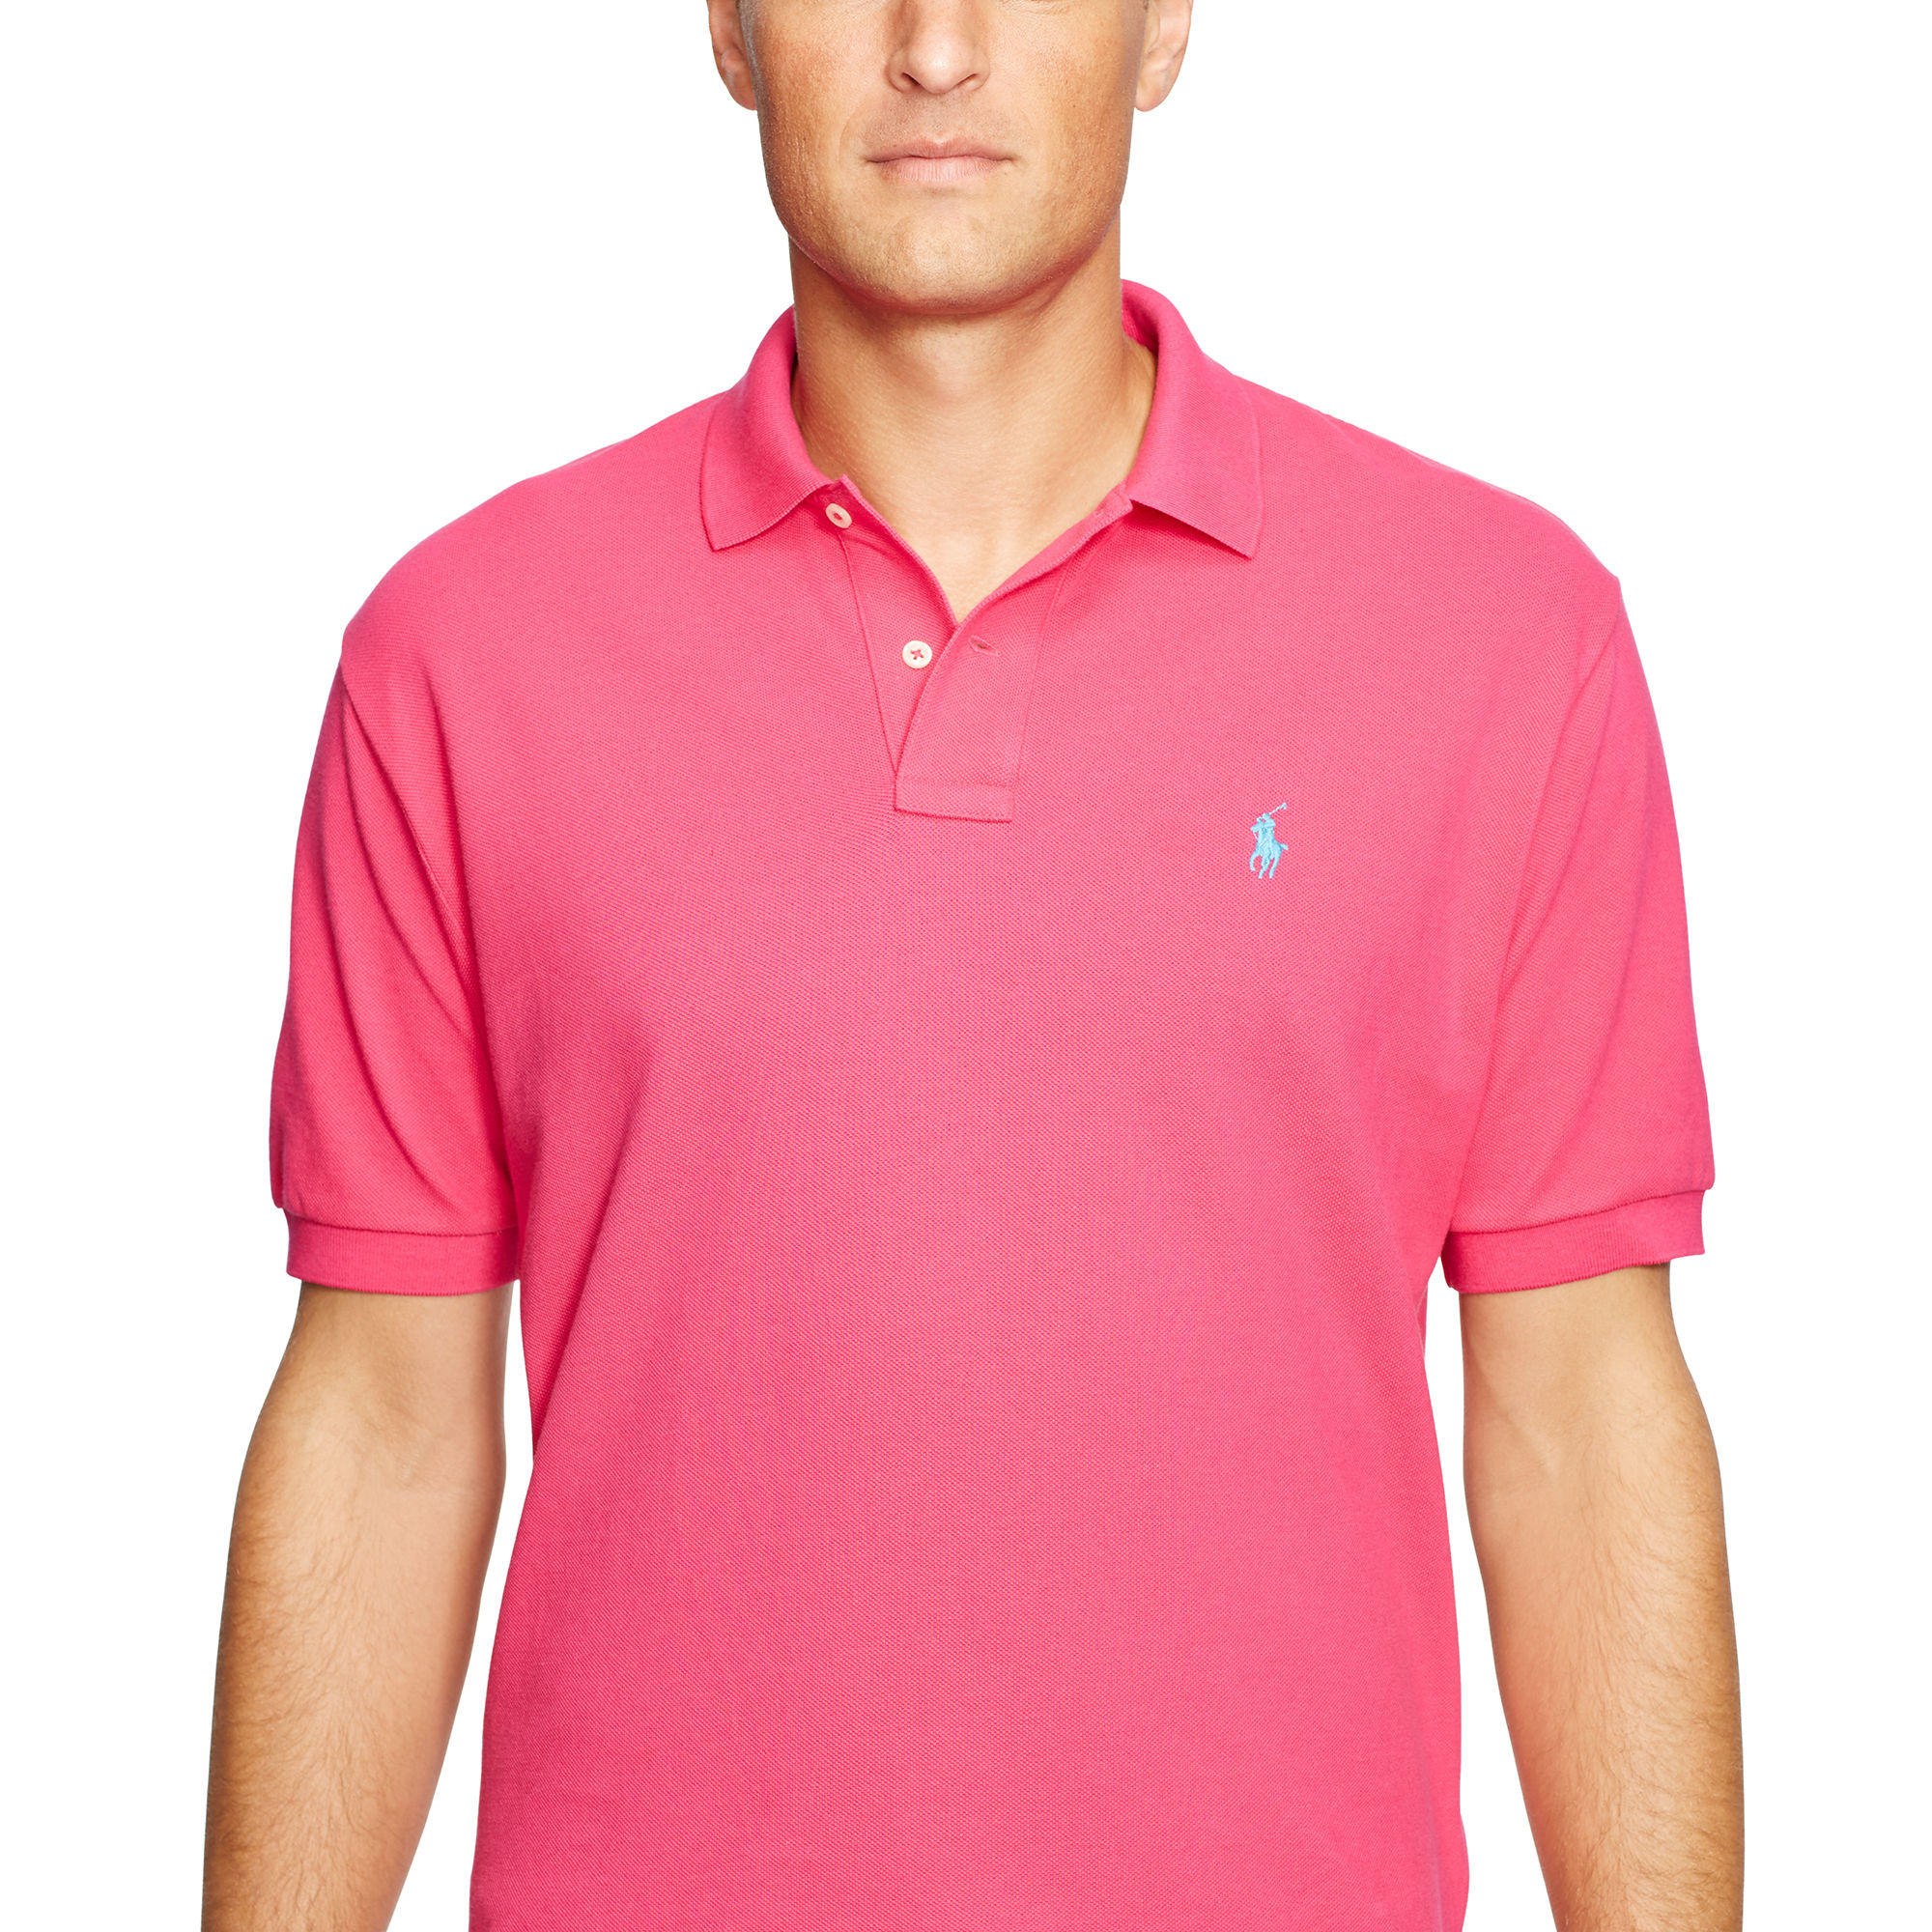 polo ralph lauren custom fit mesh polo in pink for men lyst. Black Bedroom Furniture Sets. Home Design Ideas